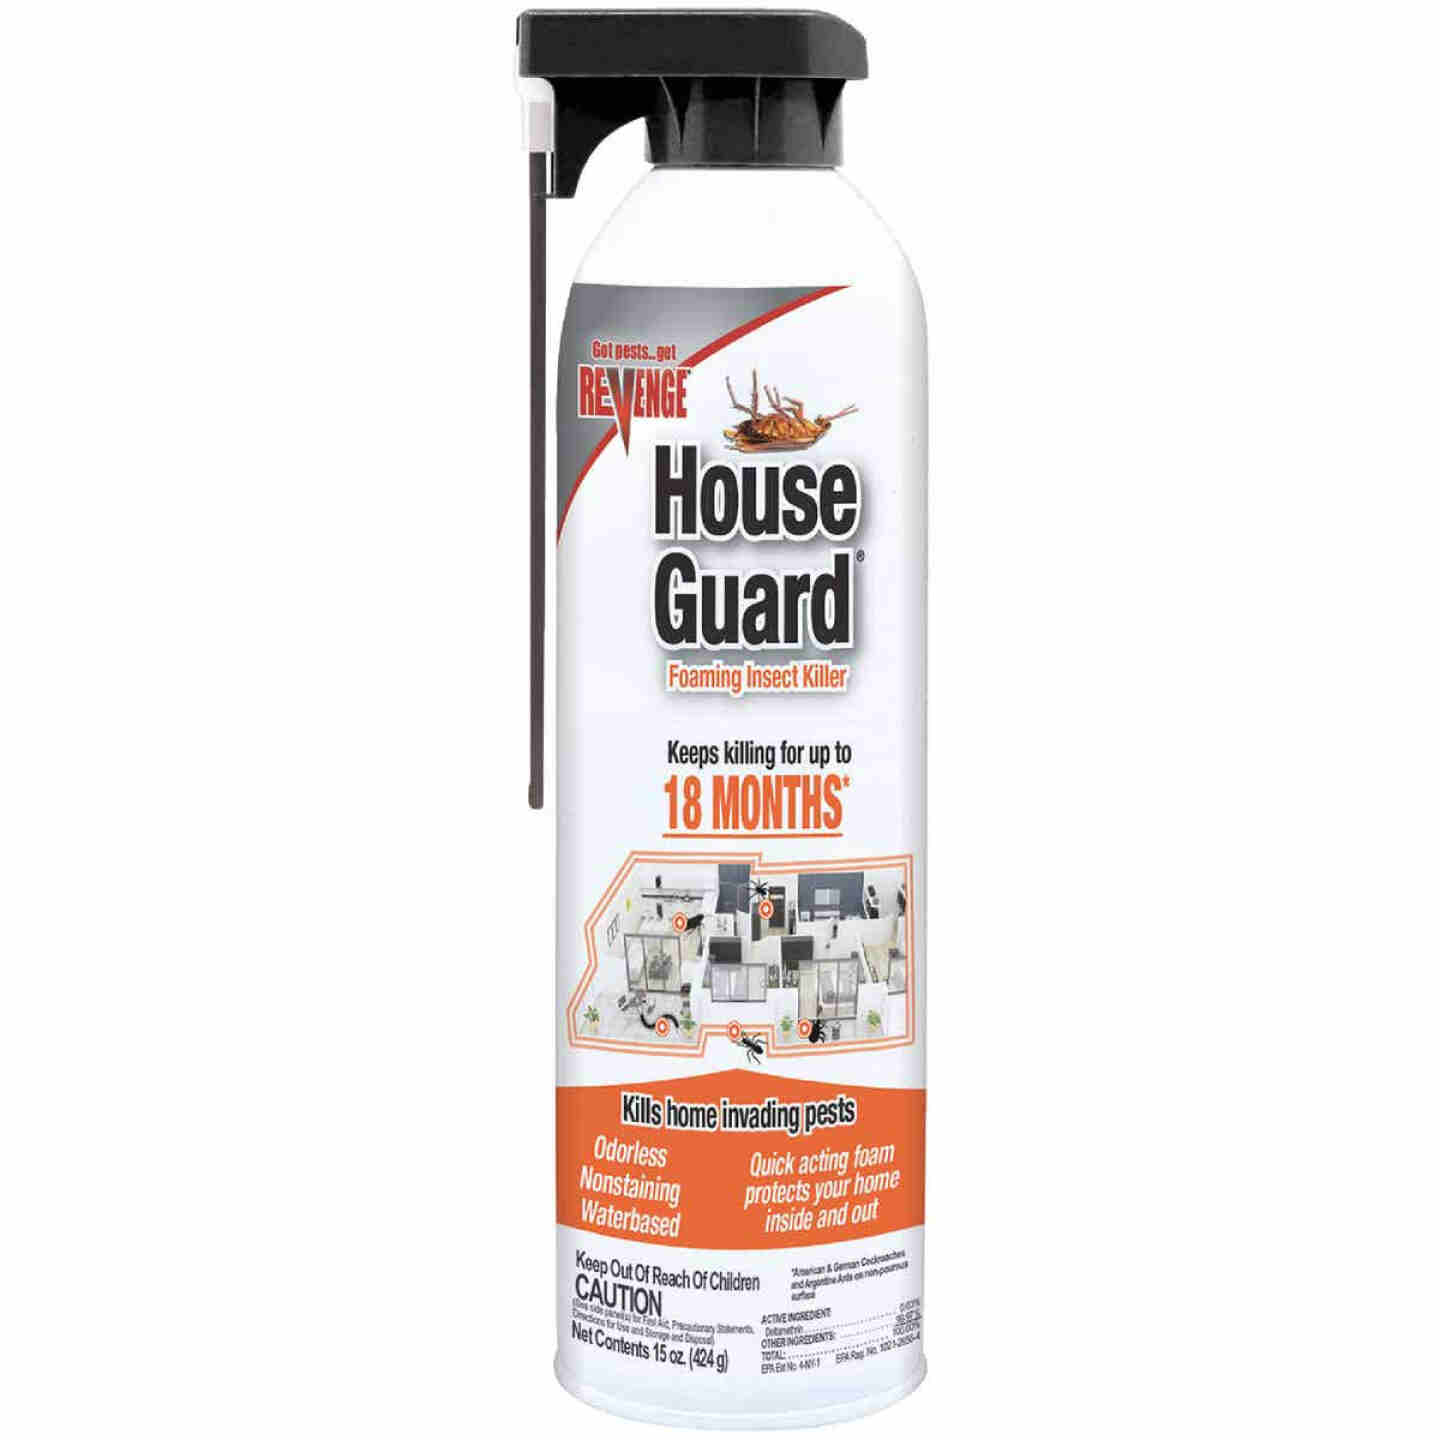 Bonide House Guard 15 Oz. Ready To Use Foaming Spray Insect Killer Image 1